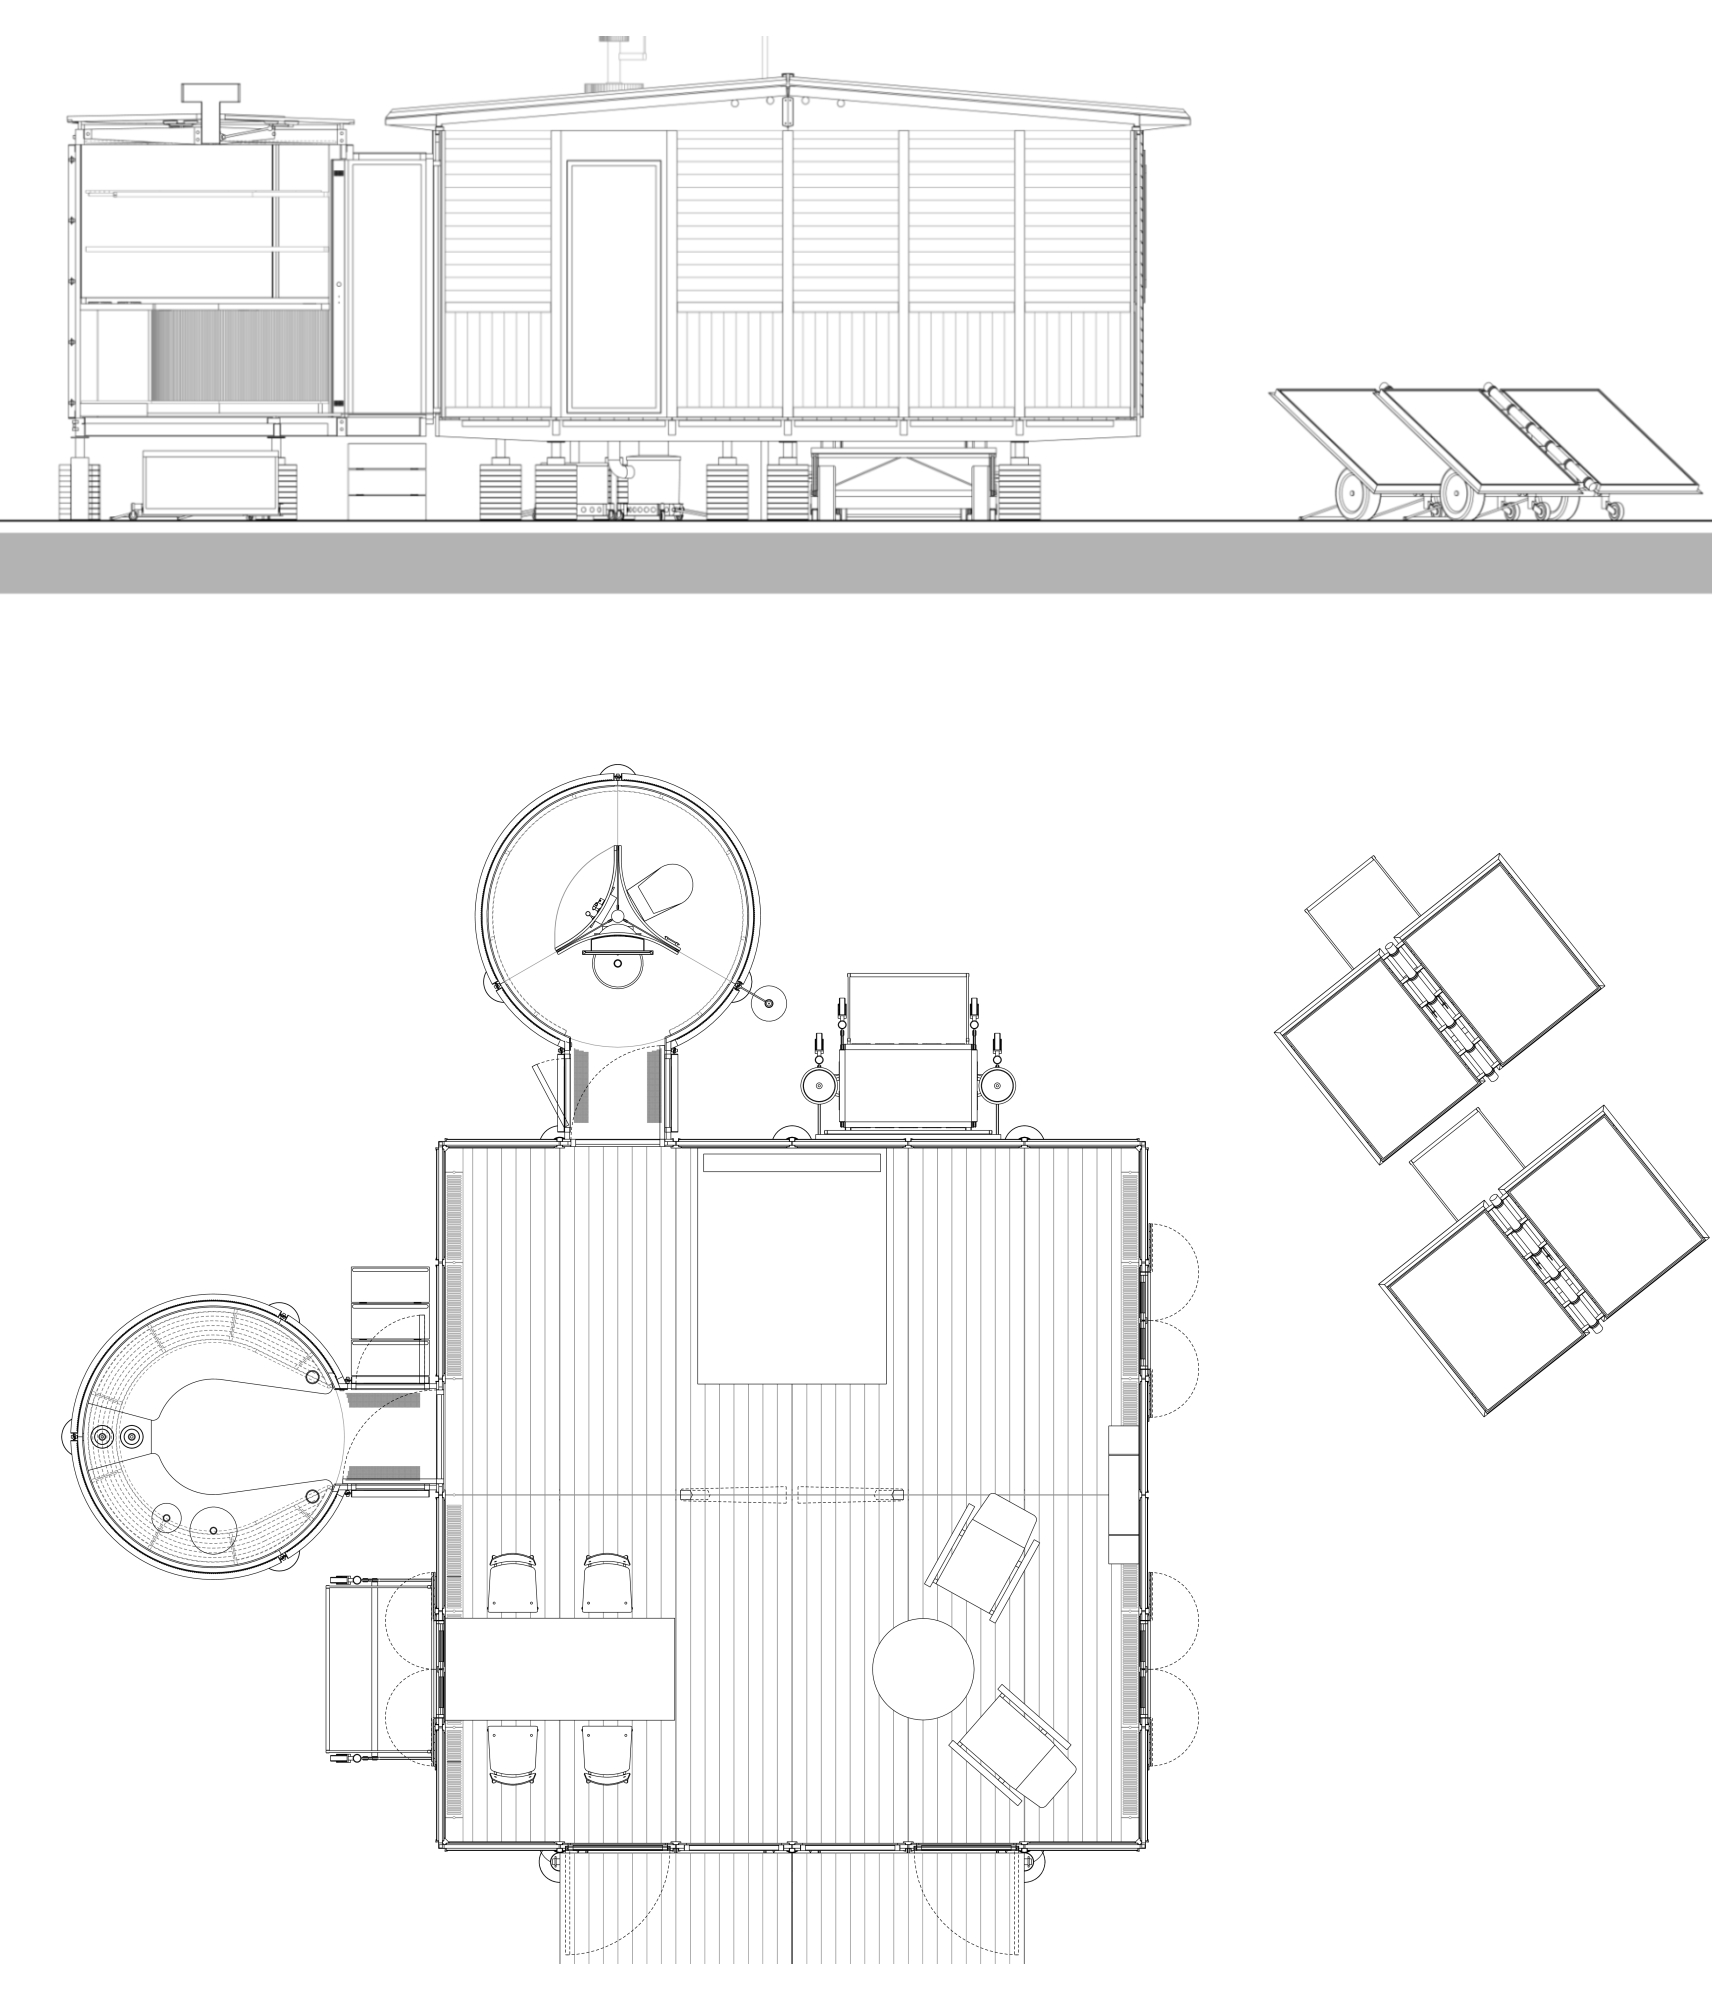 Adaptation Of Jean Prouve S 6m X 6m Demountable House By